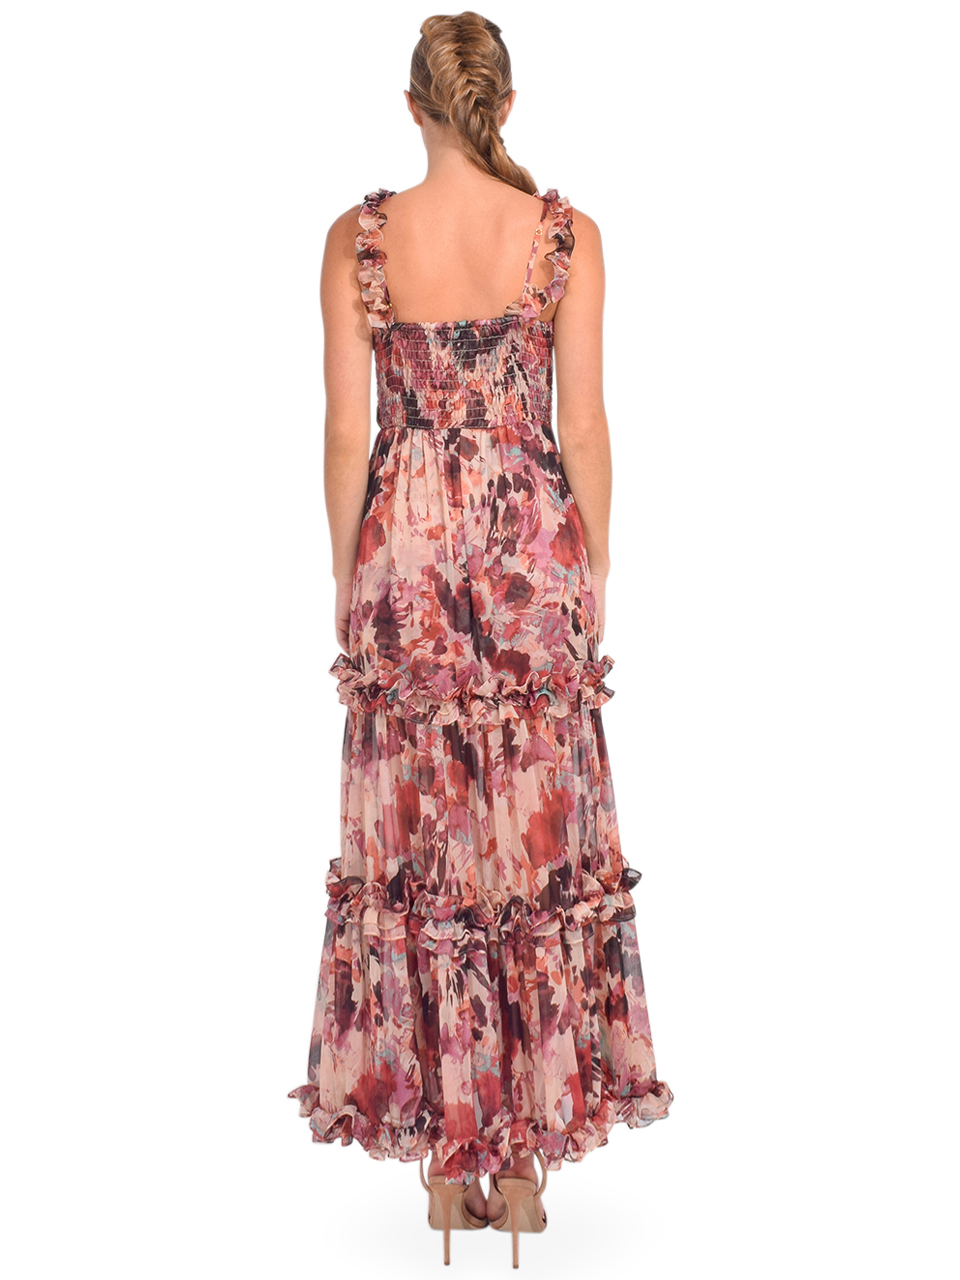 MISA Avery Maxi Dress in Floradream Back View Straps on Shoulder